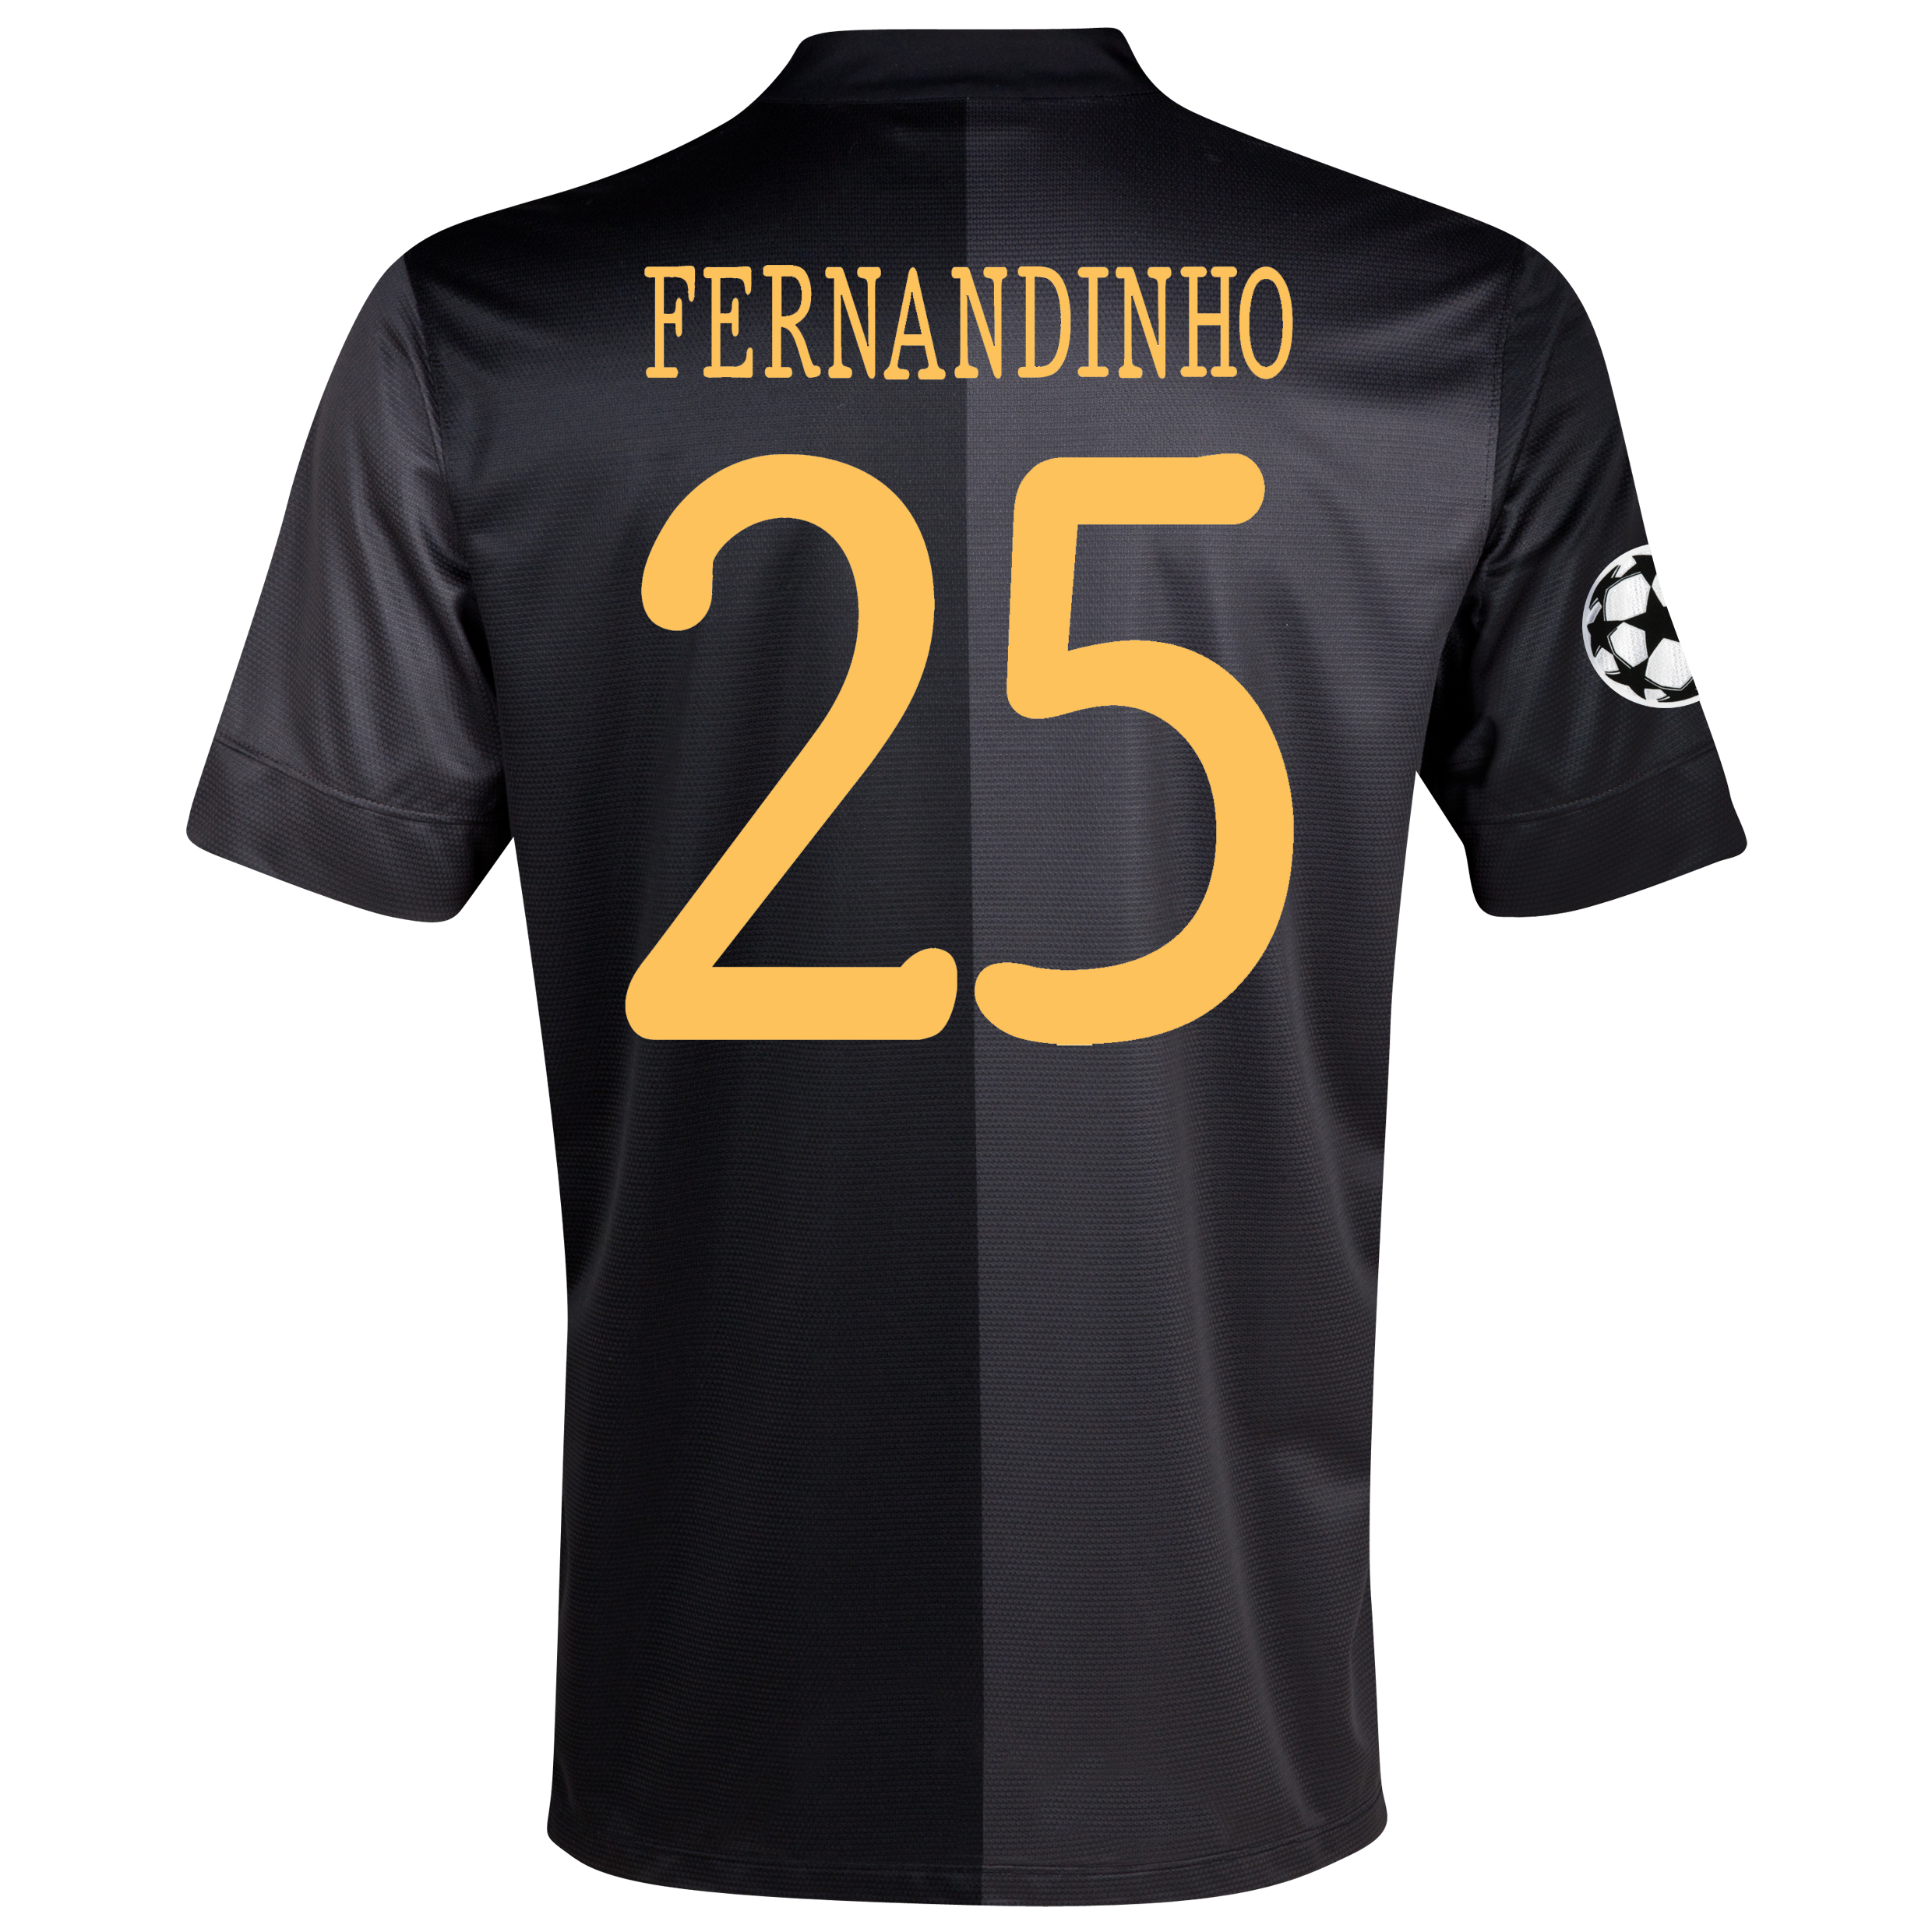 Manchester City UEFA Champions League Away Shirt 2013/14 with Fernandinho 25 printing